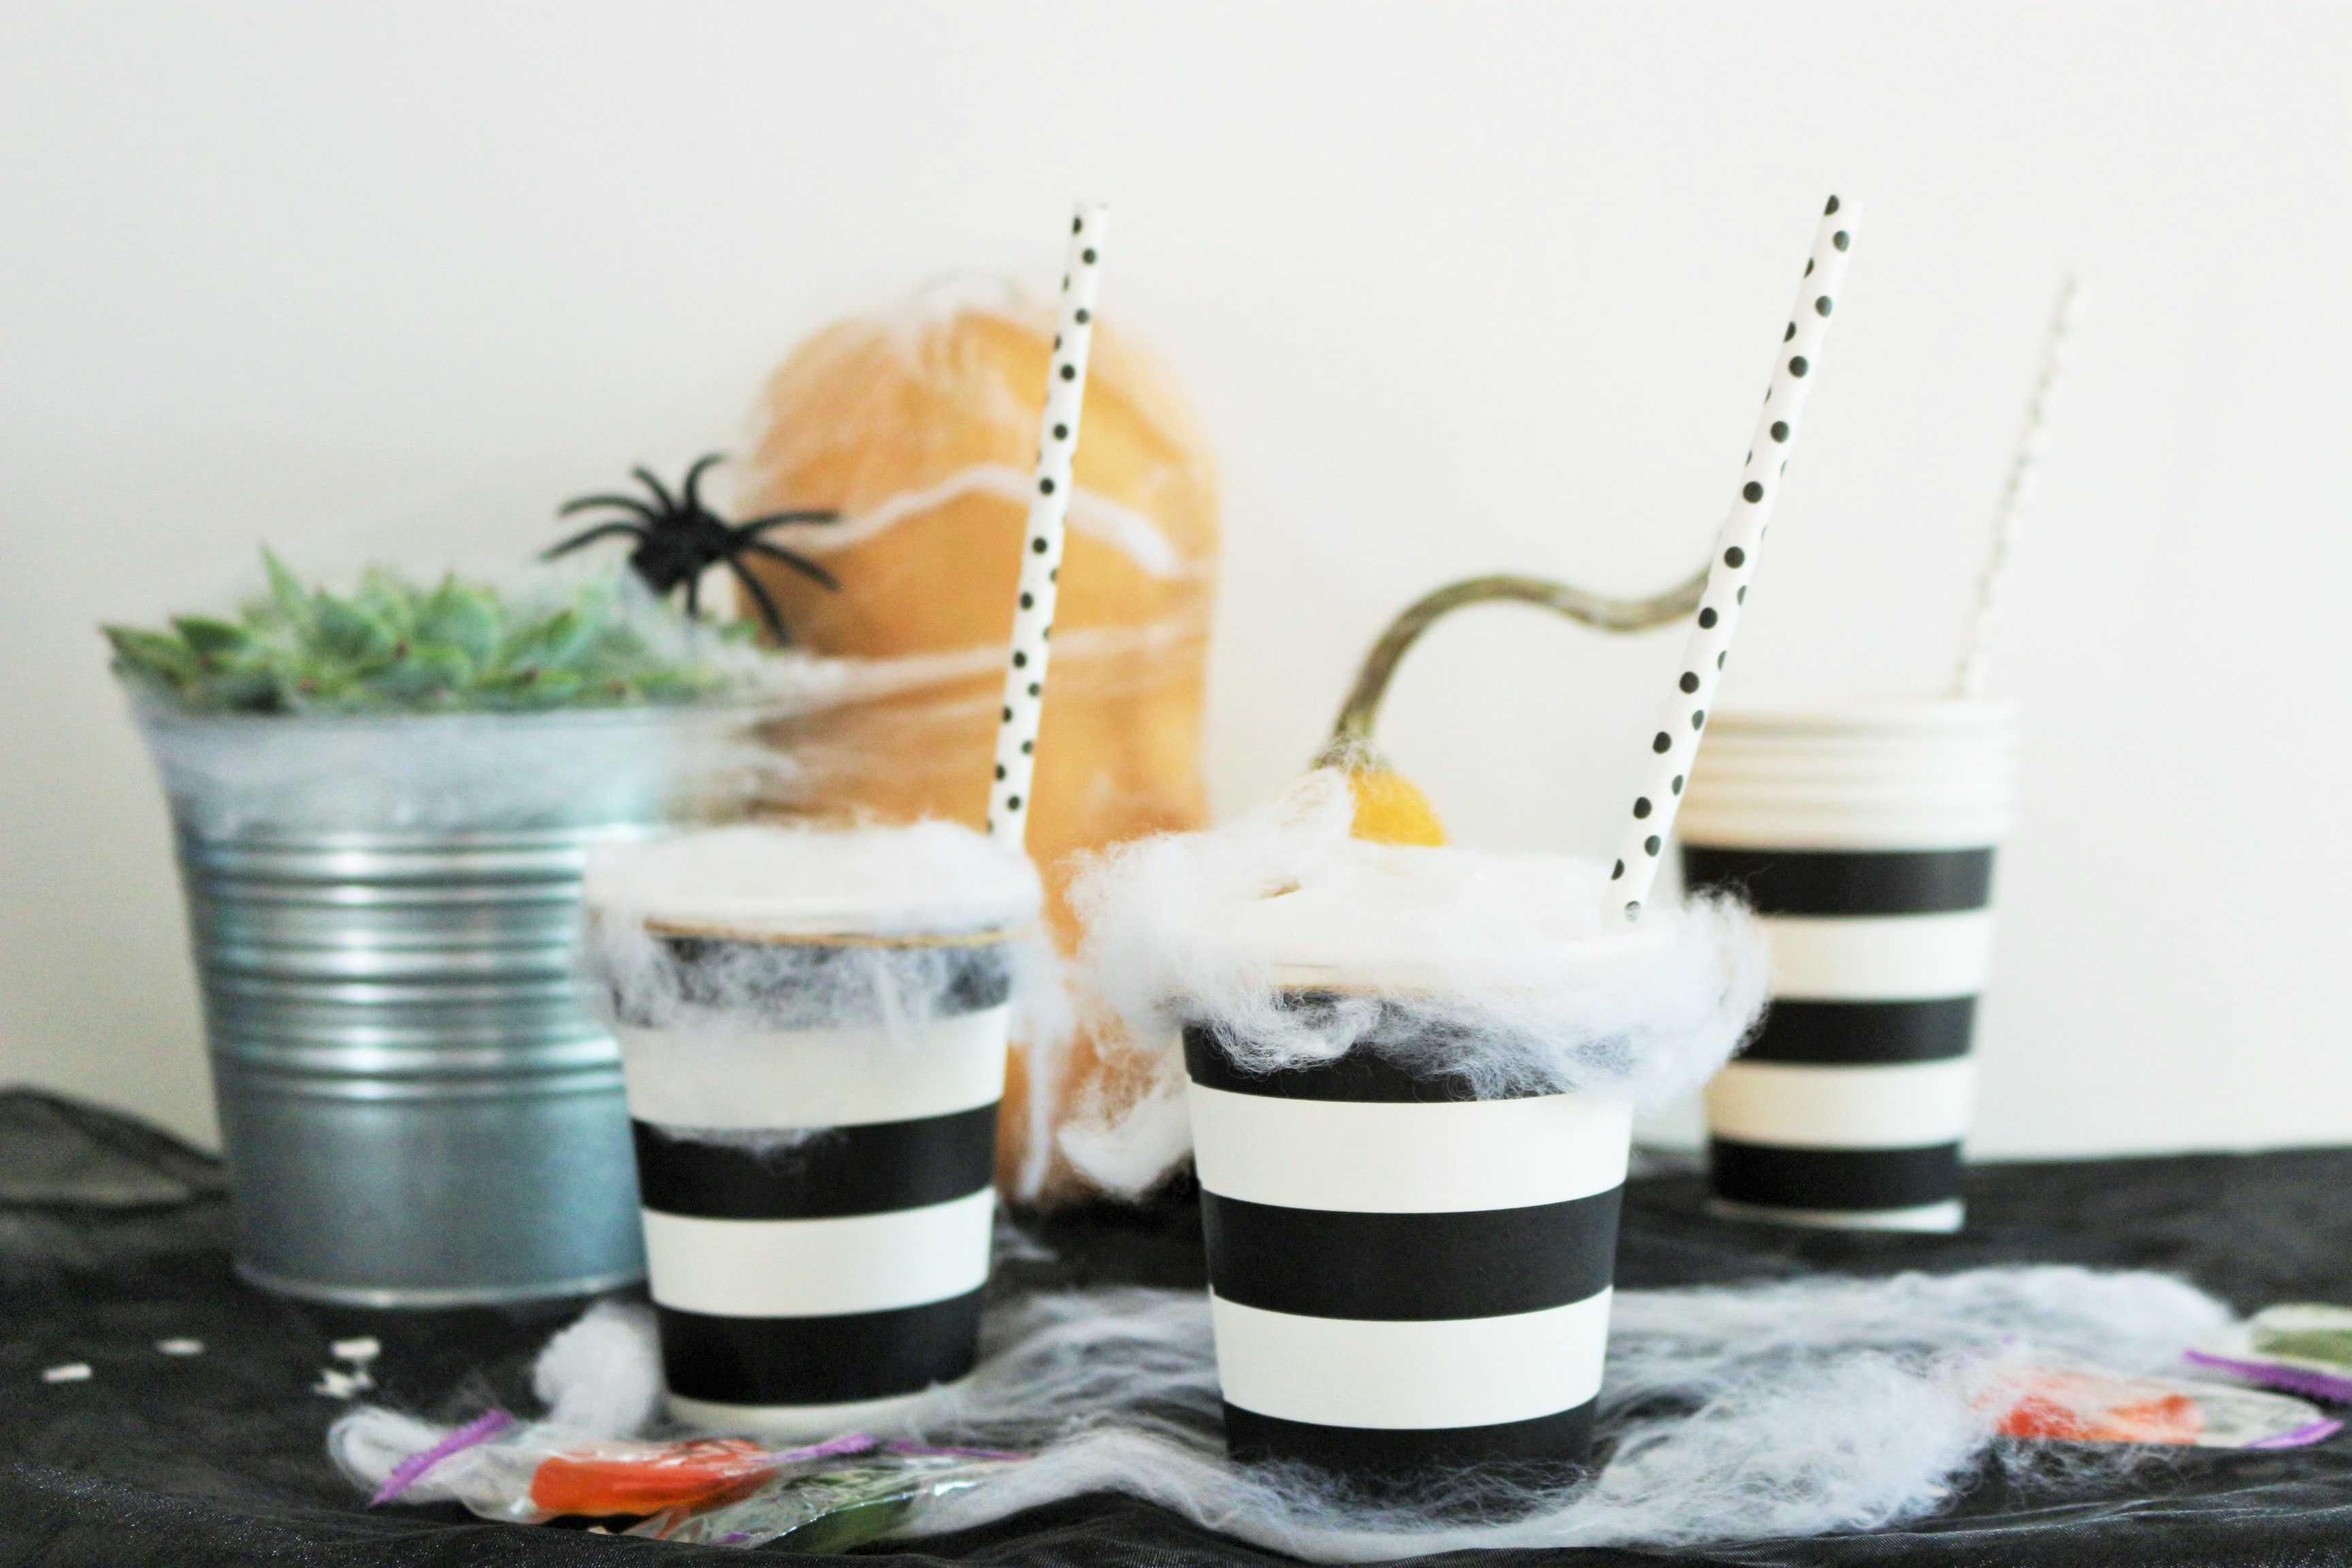 diy halloween s igkeiten verpackung als cocktail mit watte und pappbecher partystories blog. Black Bedroom Furniture Sets. Home Design Ideas